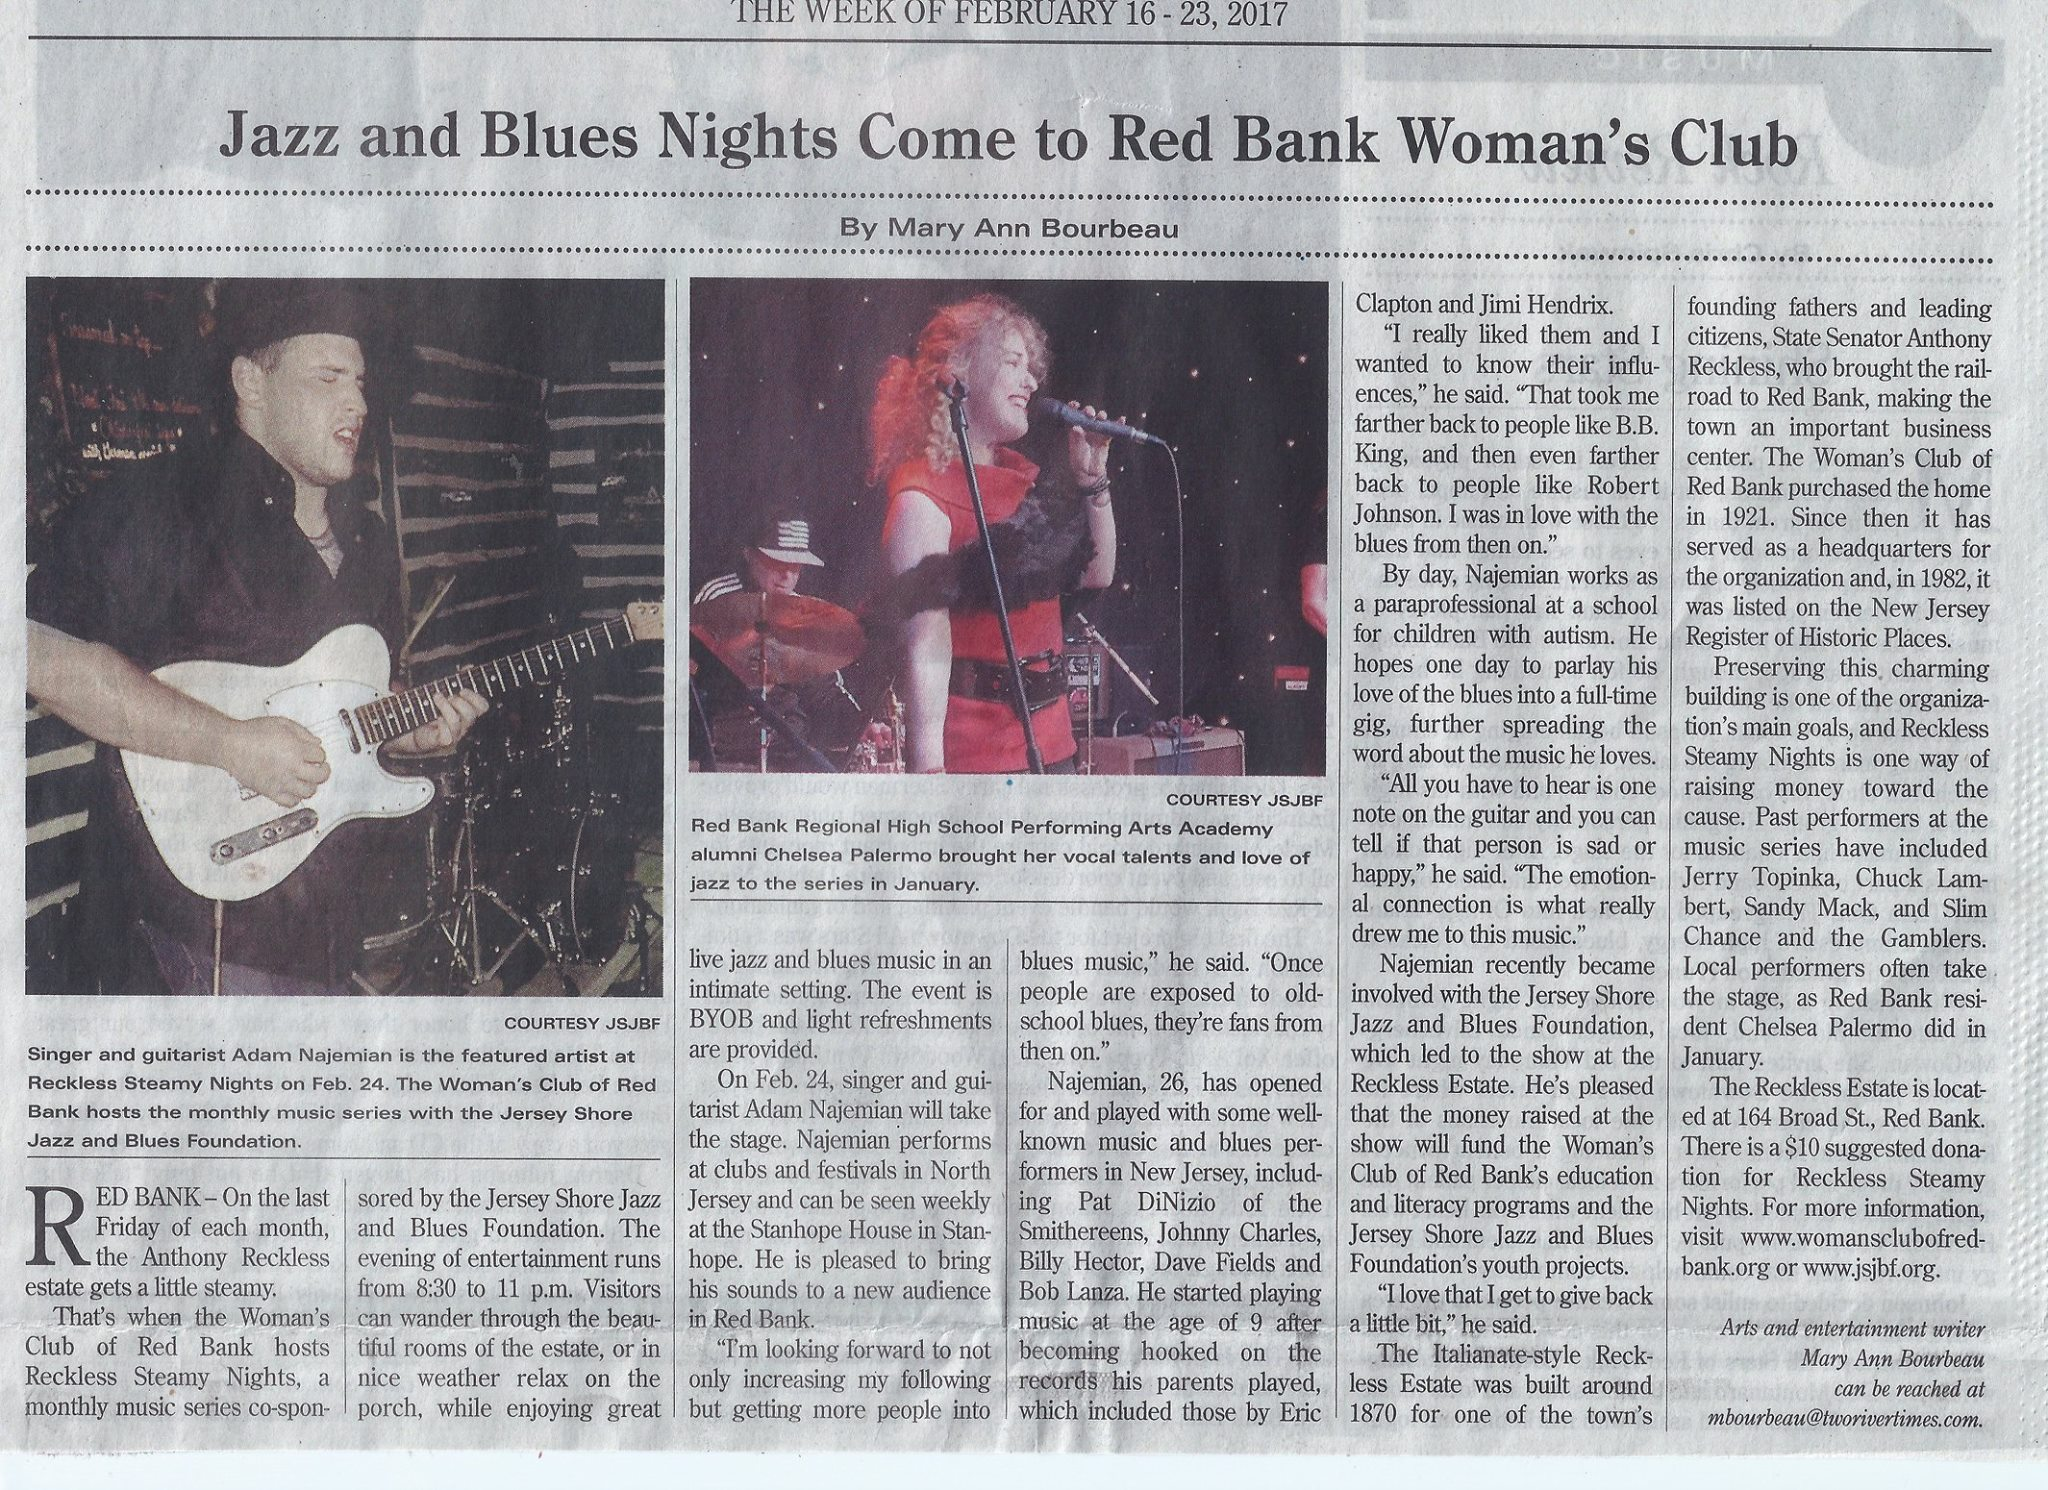 Adam was featured in the Two River Times on February 23rd, 2017, in advance of his performance at the Reckless Estate in Red Bank, NJ.